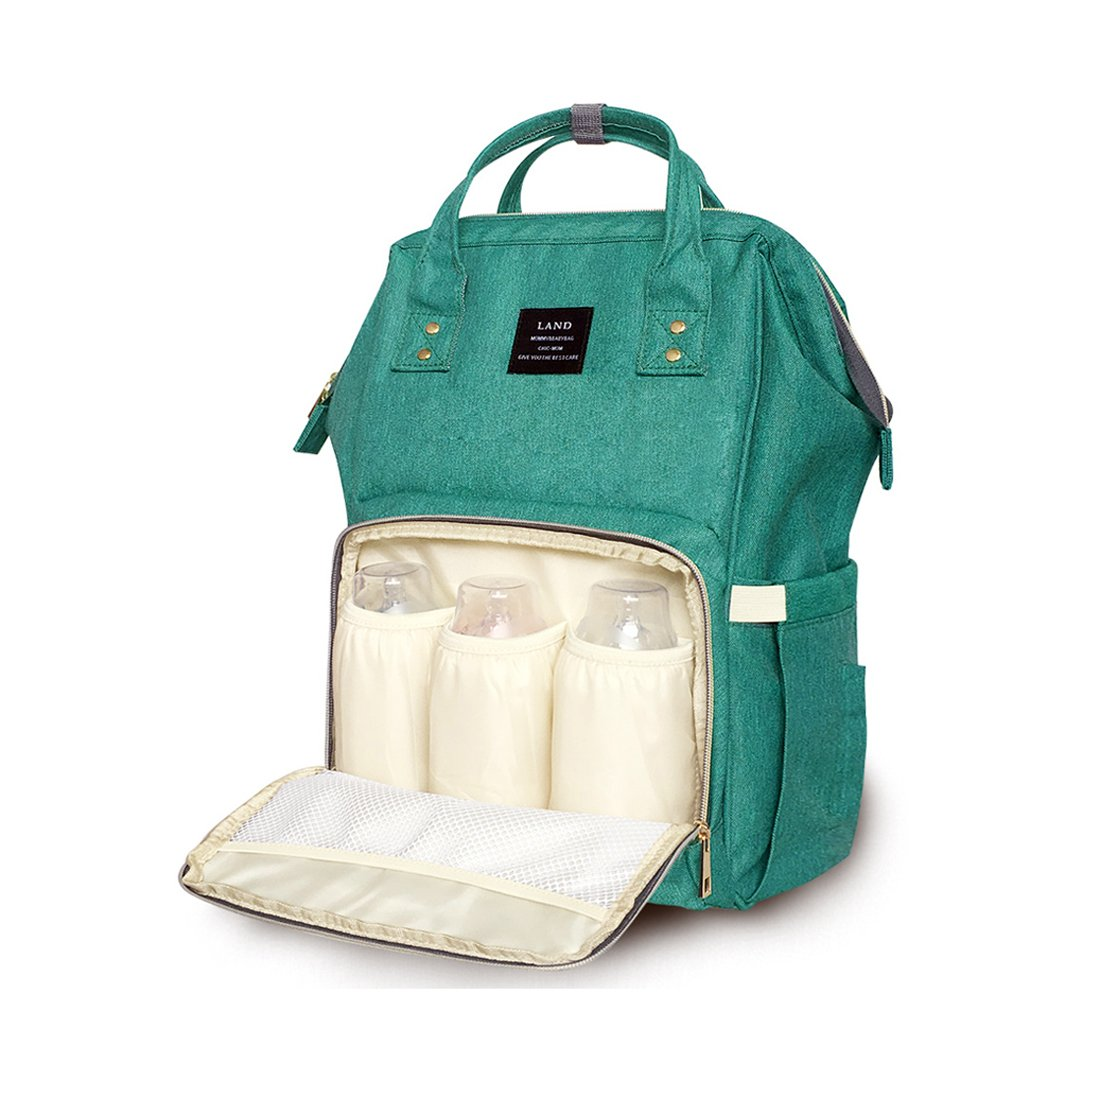 8e256d11f56c4 Diaper Backpack